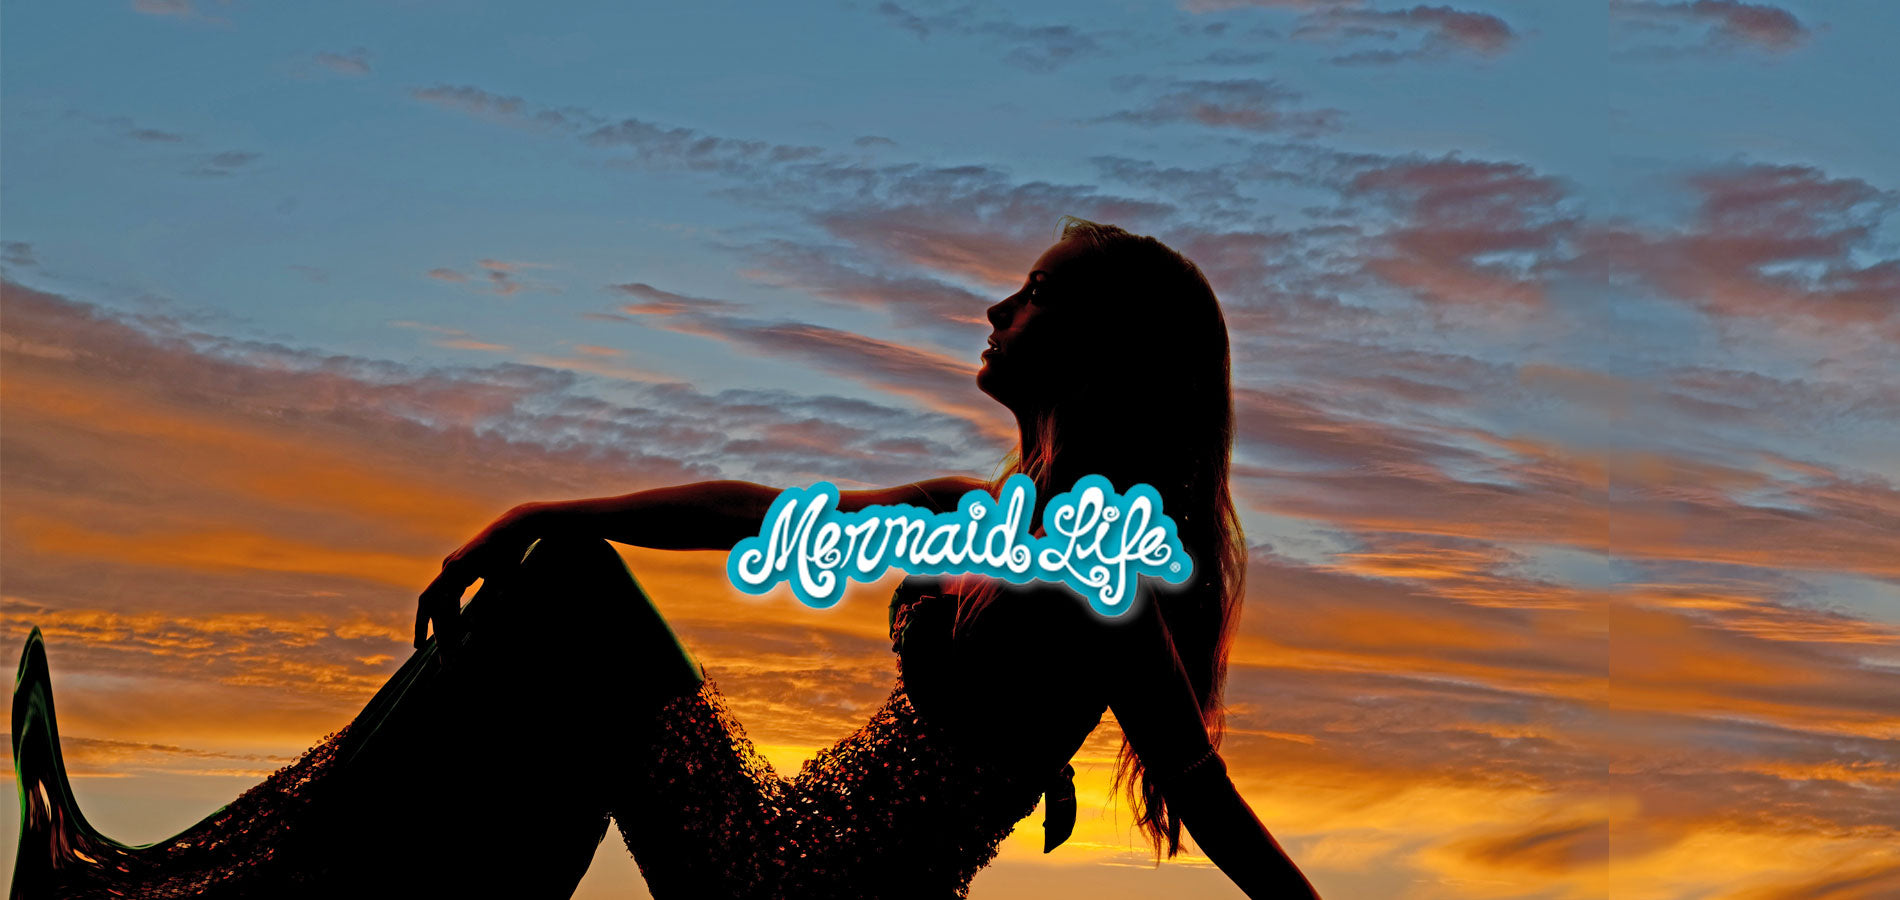 Official Mermaid Life 174 Decals